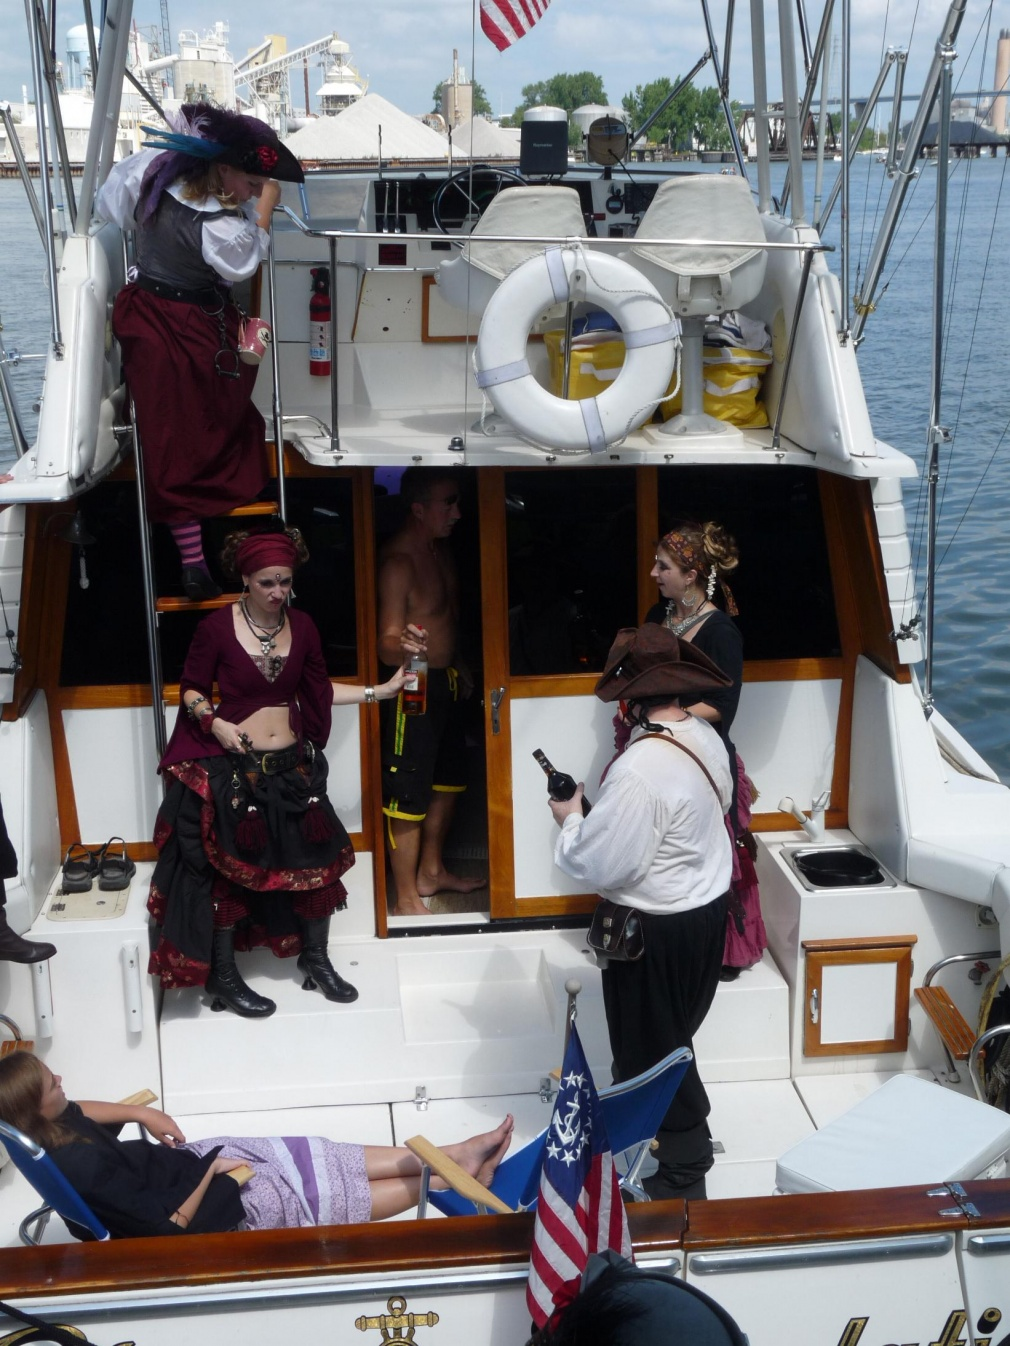 Click image for larger version  Name:Green Bay 164 pirate boarding.jpg Views:93 Size:436.9 KB ID:99013